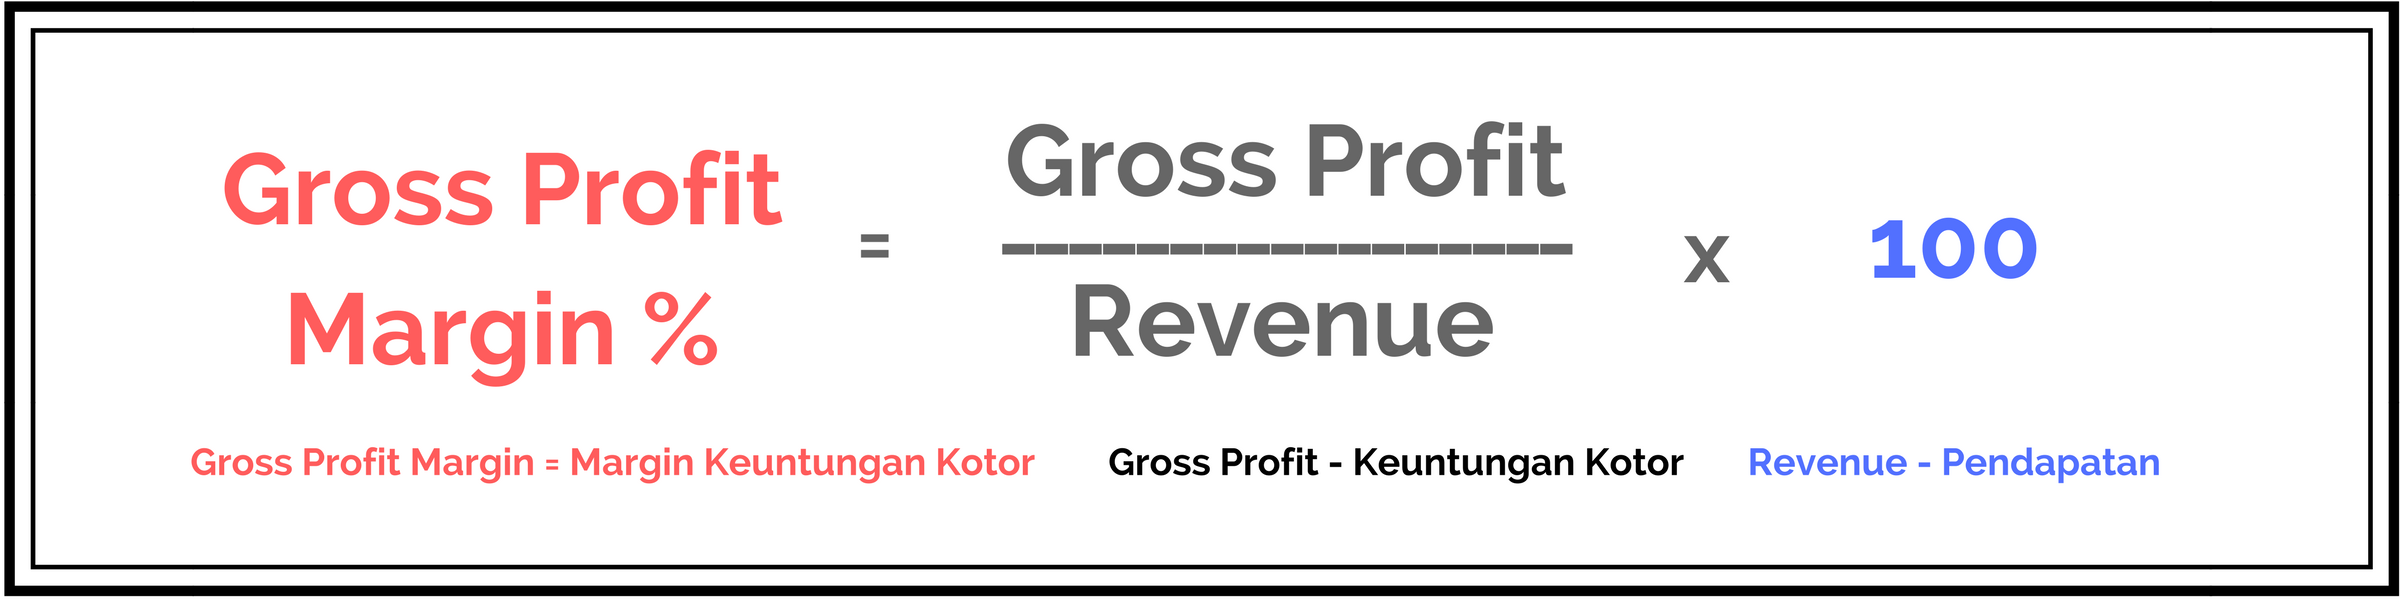 Gross Profit Margin Formula with Frame.png